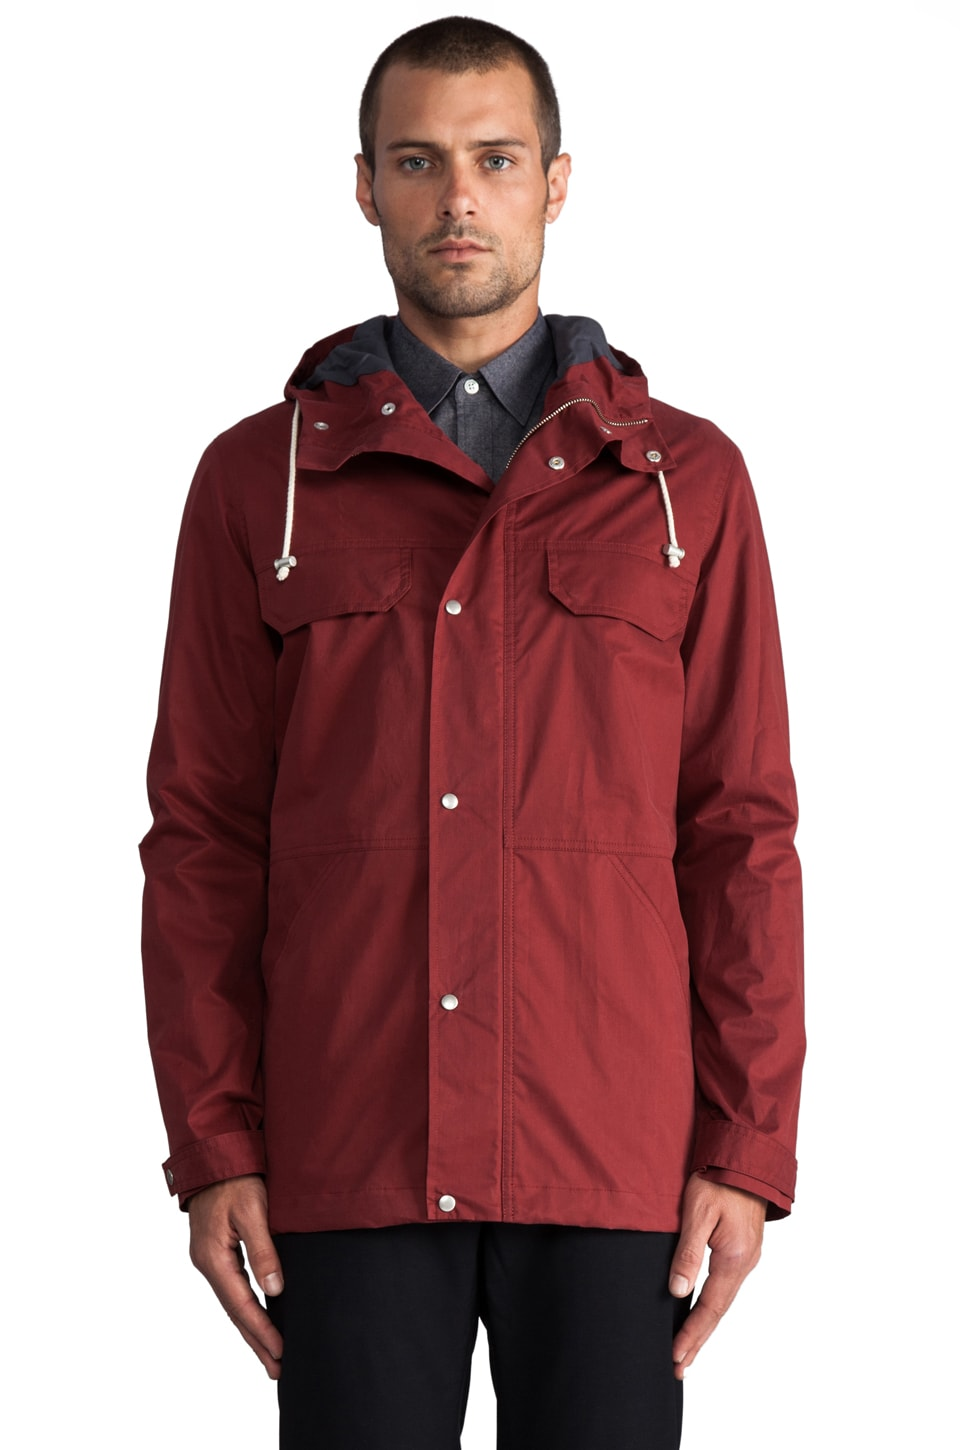 Hentsch Man Sail Jacket in Maroon